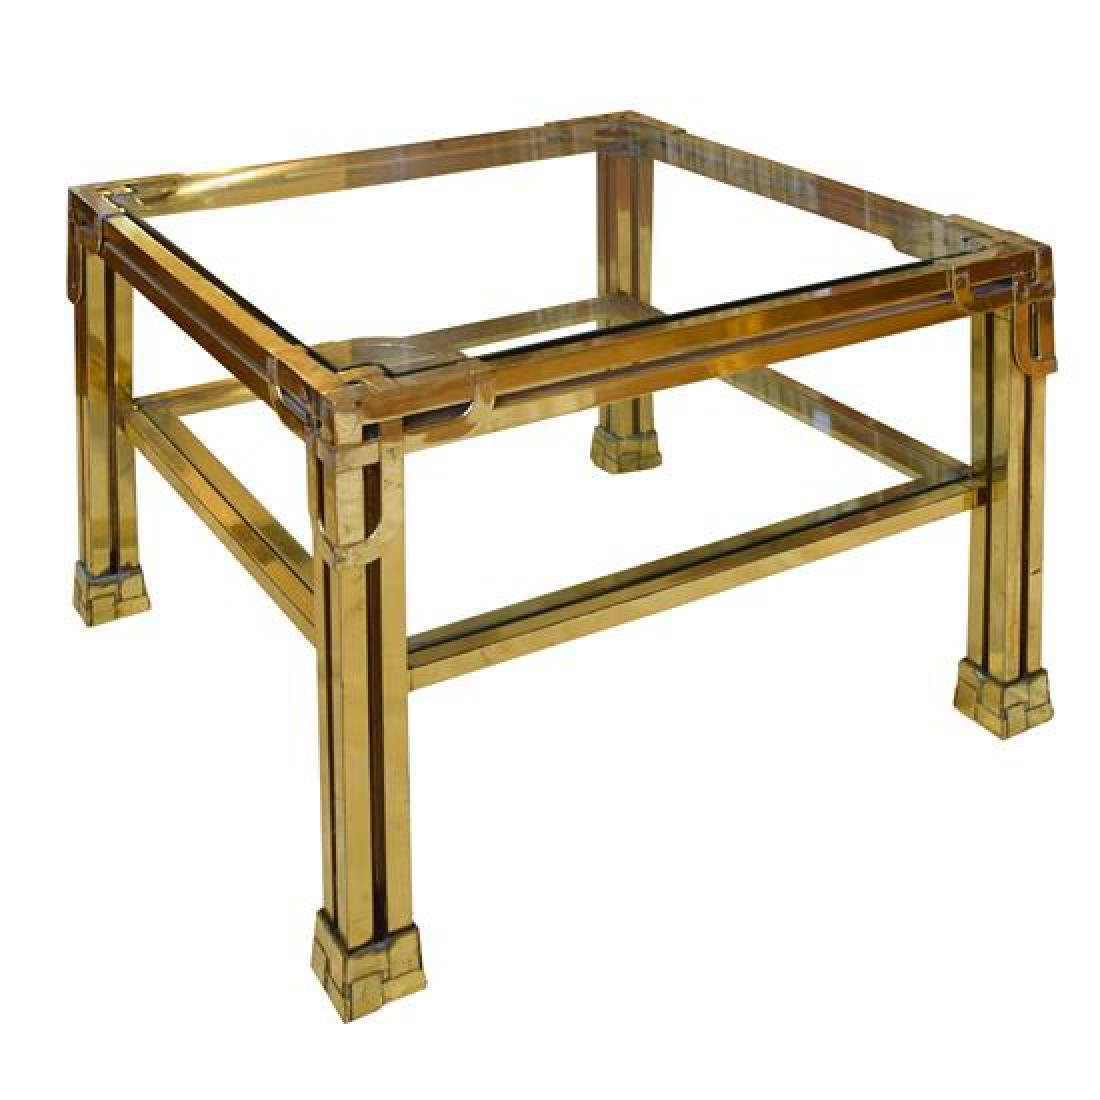 """A Brass and Glass Cocktail Table 27.75"""" W x 27.75"""" D x - 4"""